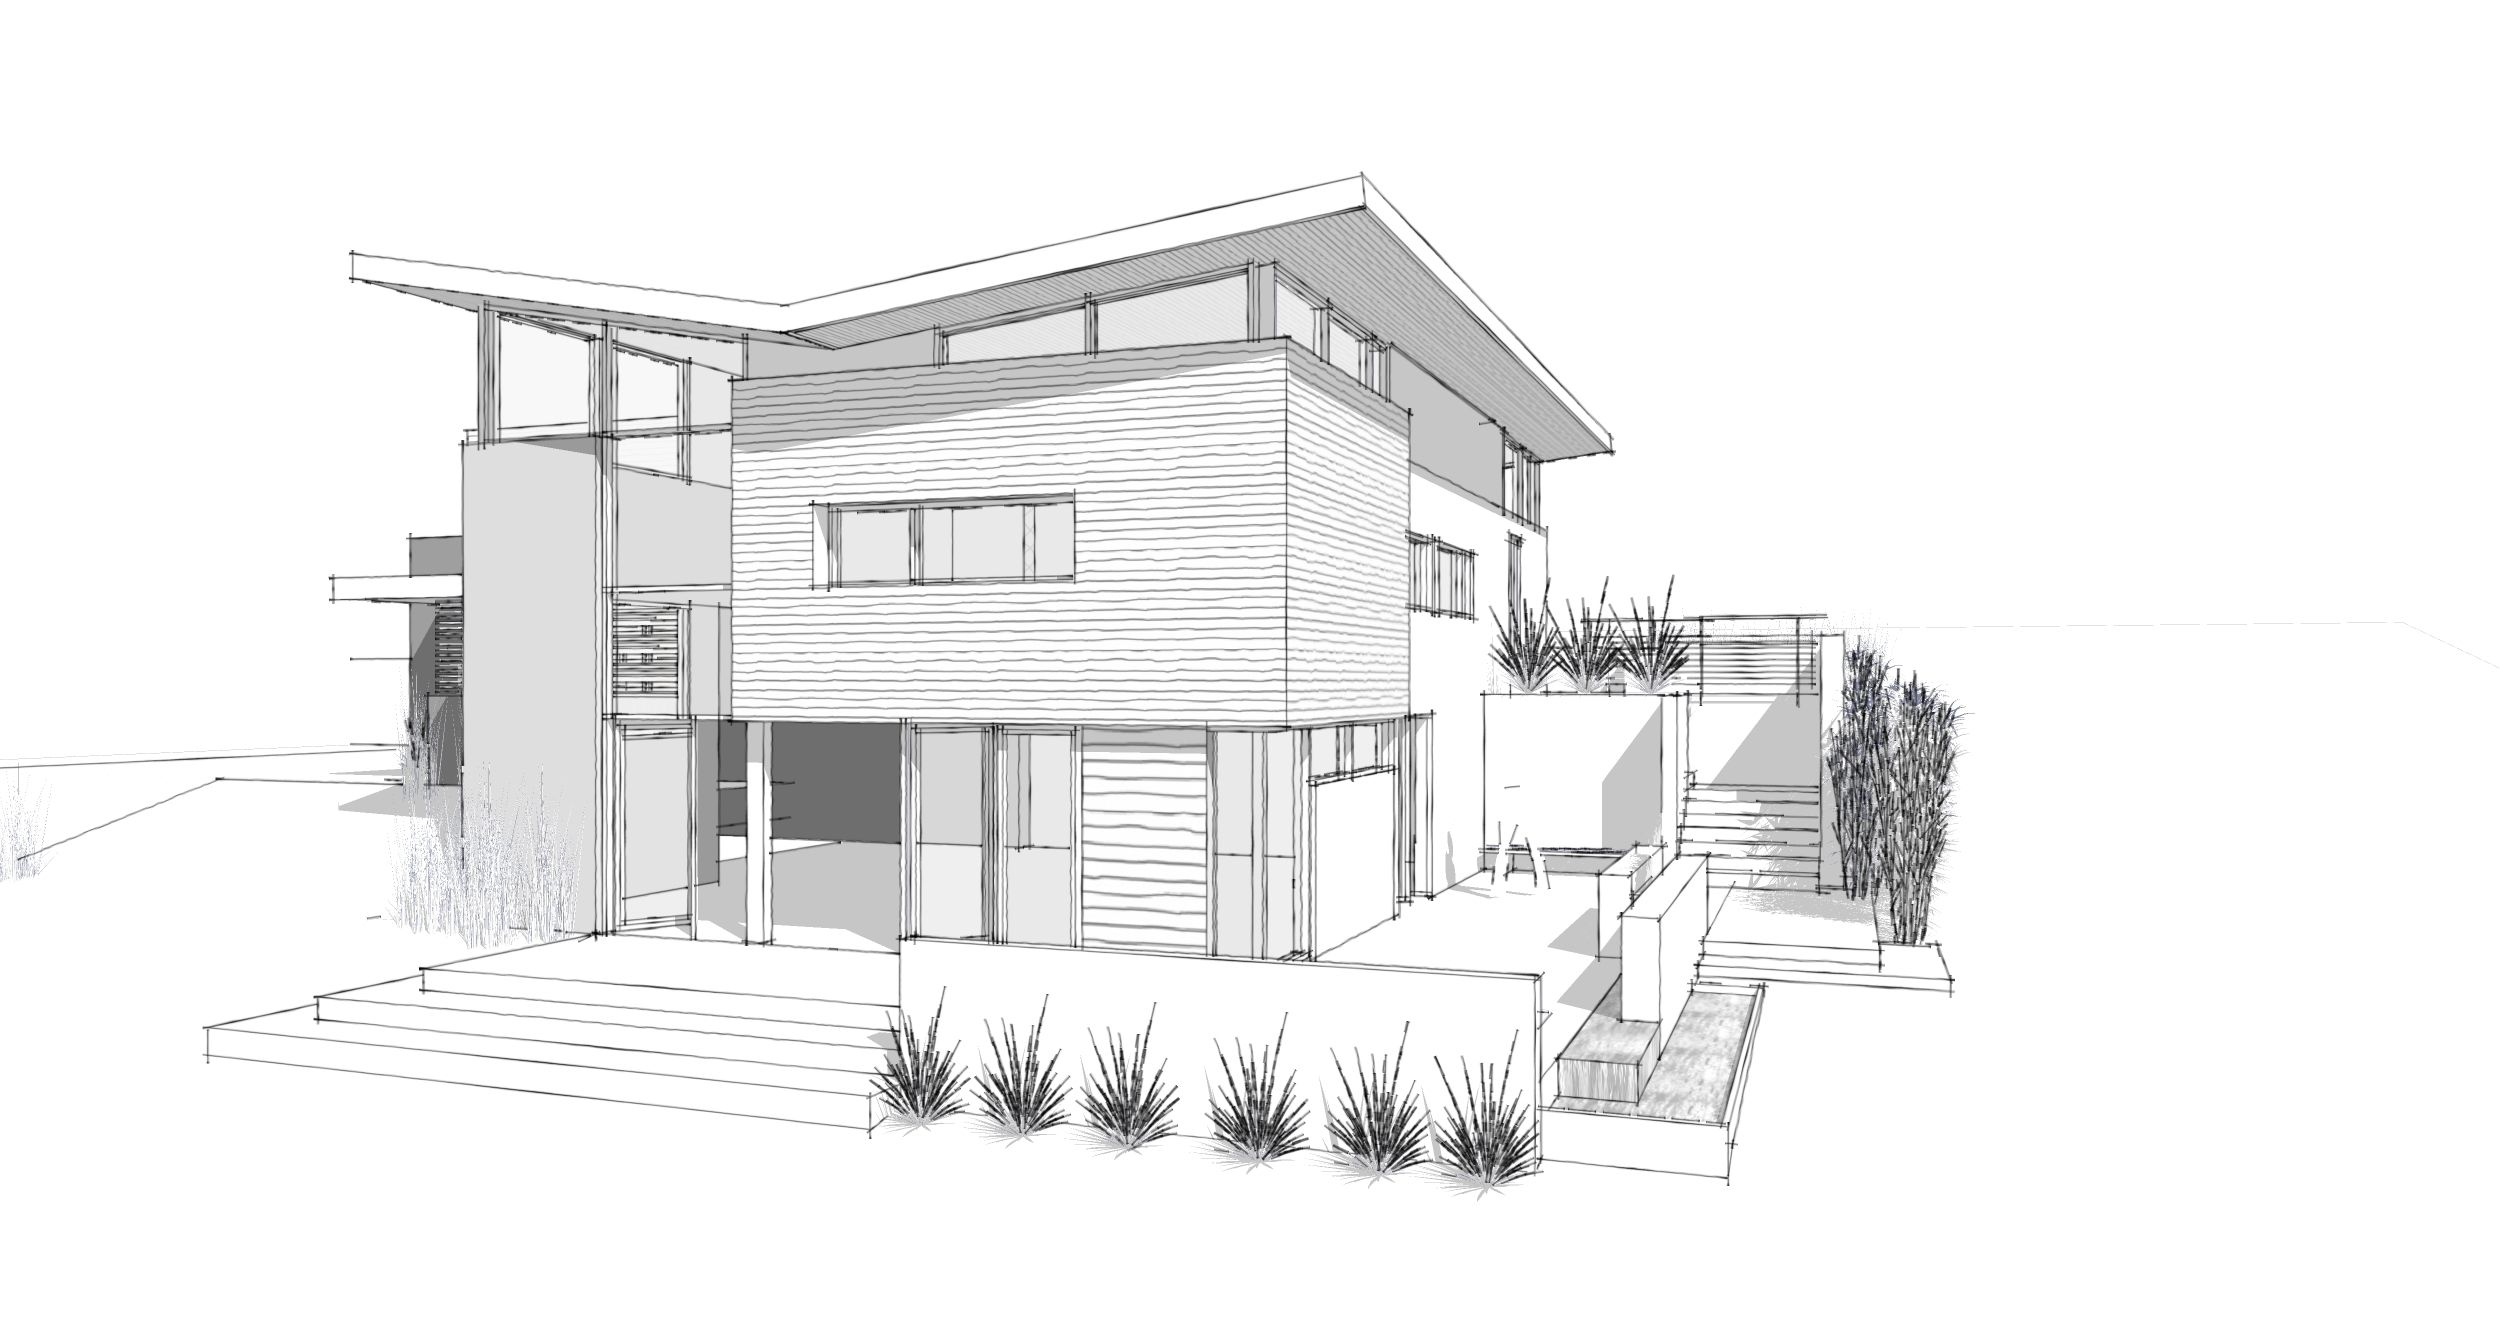 Modern home architecture sketches design ideas 13435 for Draw your house plans